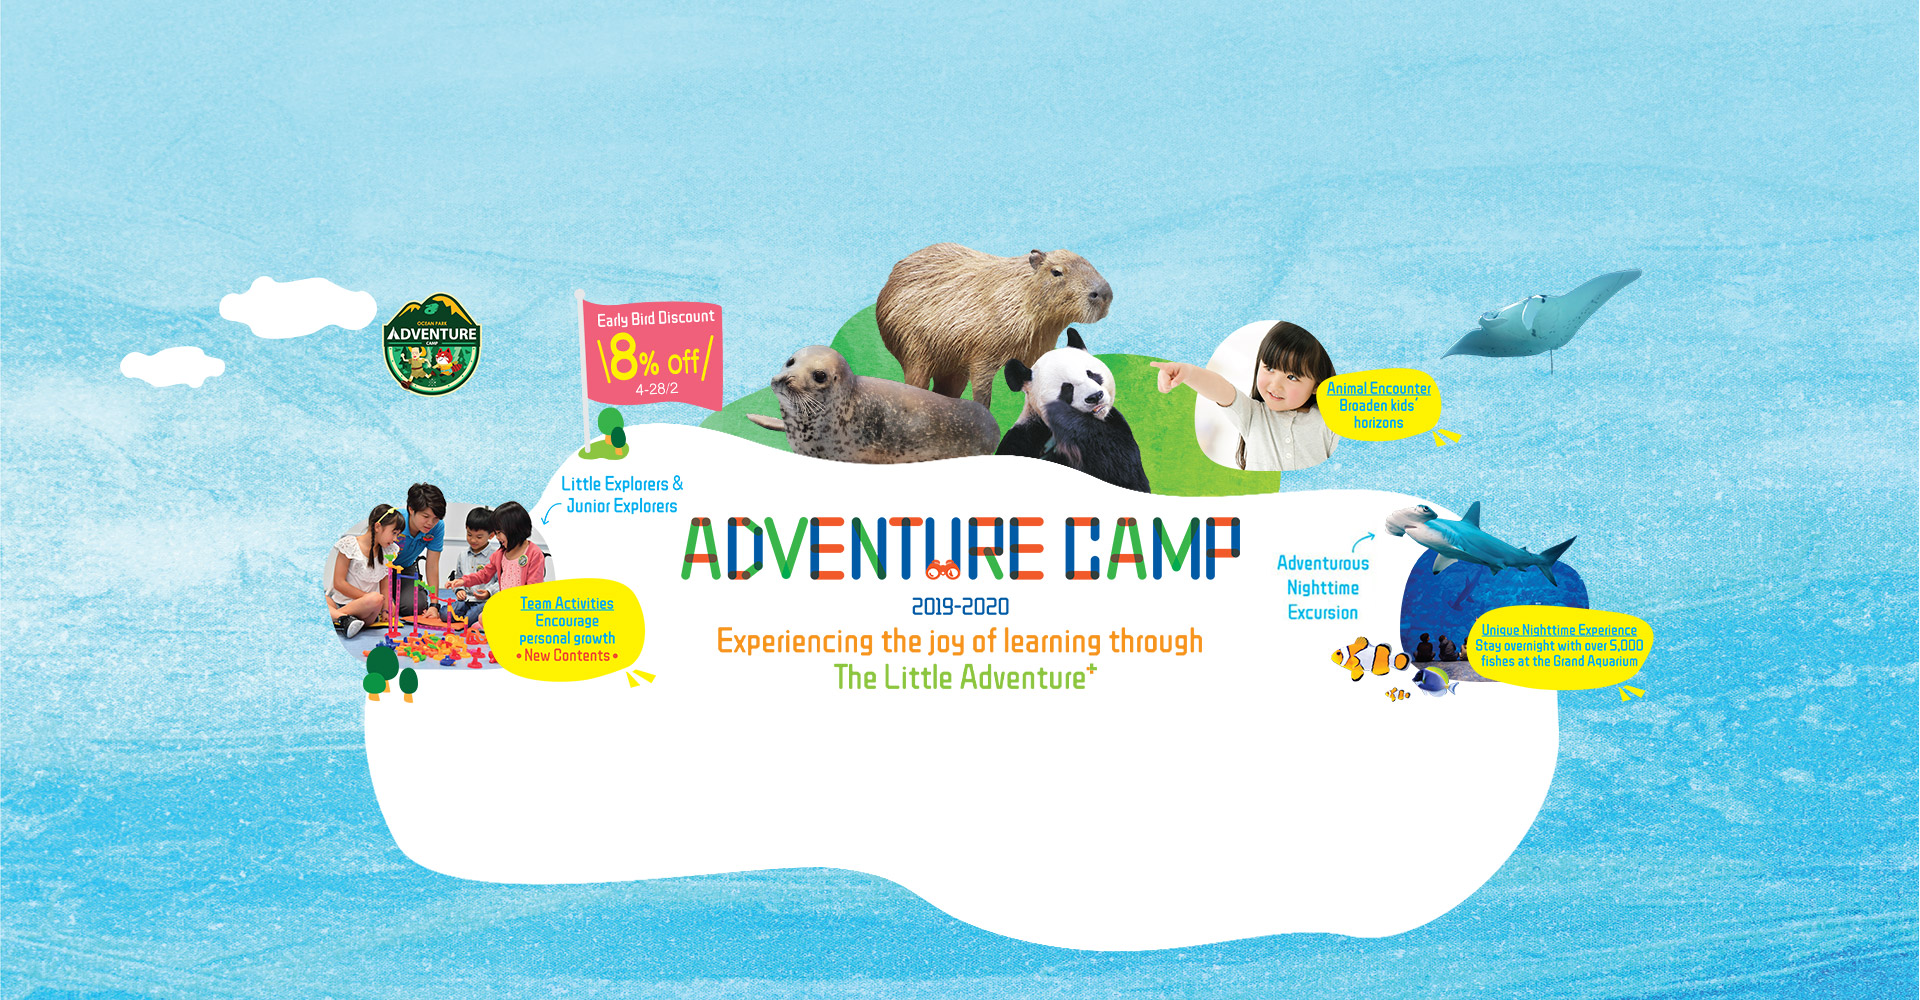 Adventure Camp Series 2019-2020